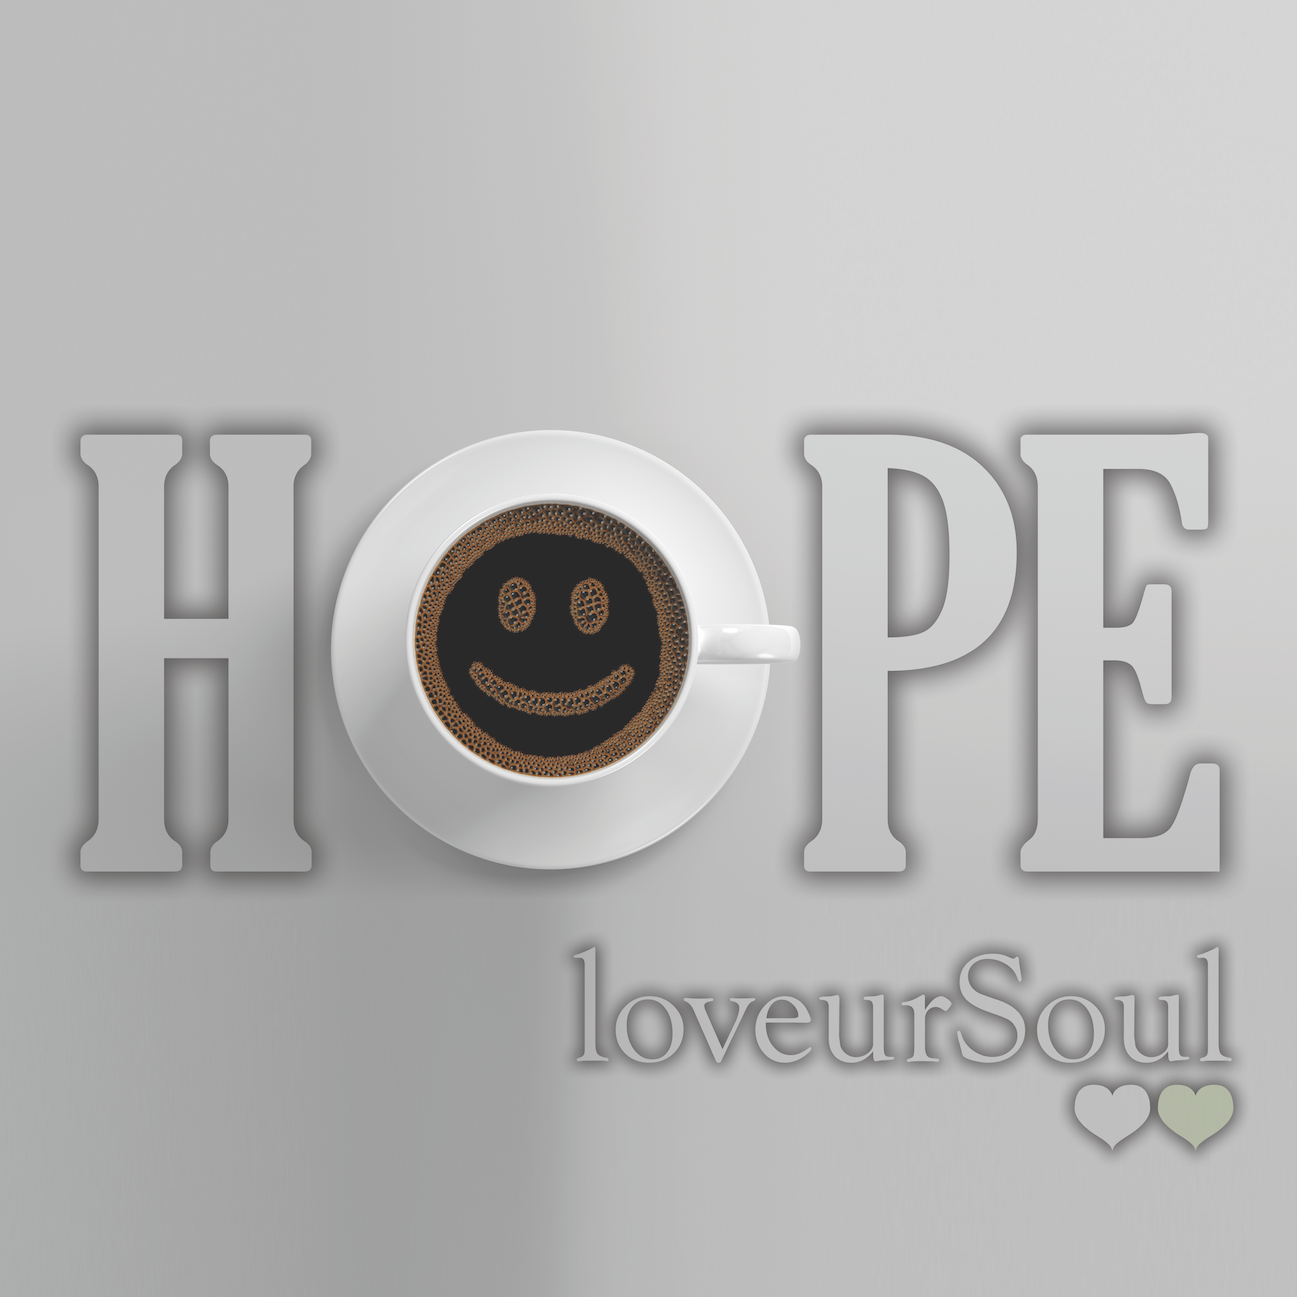 Loveursoul Hope